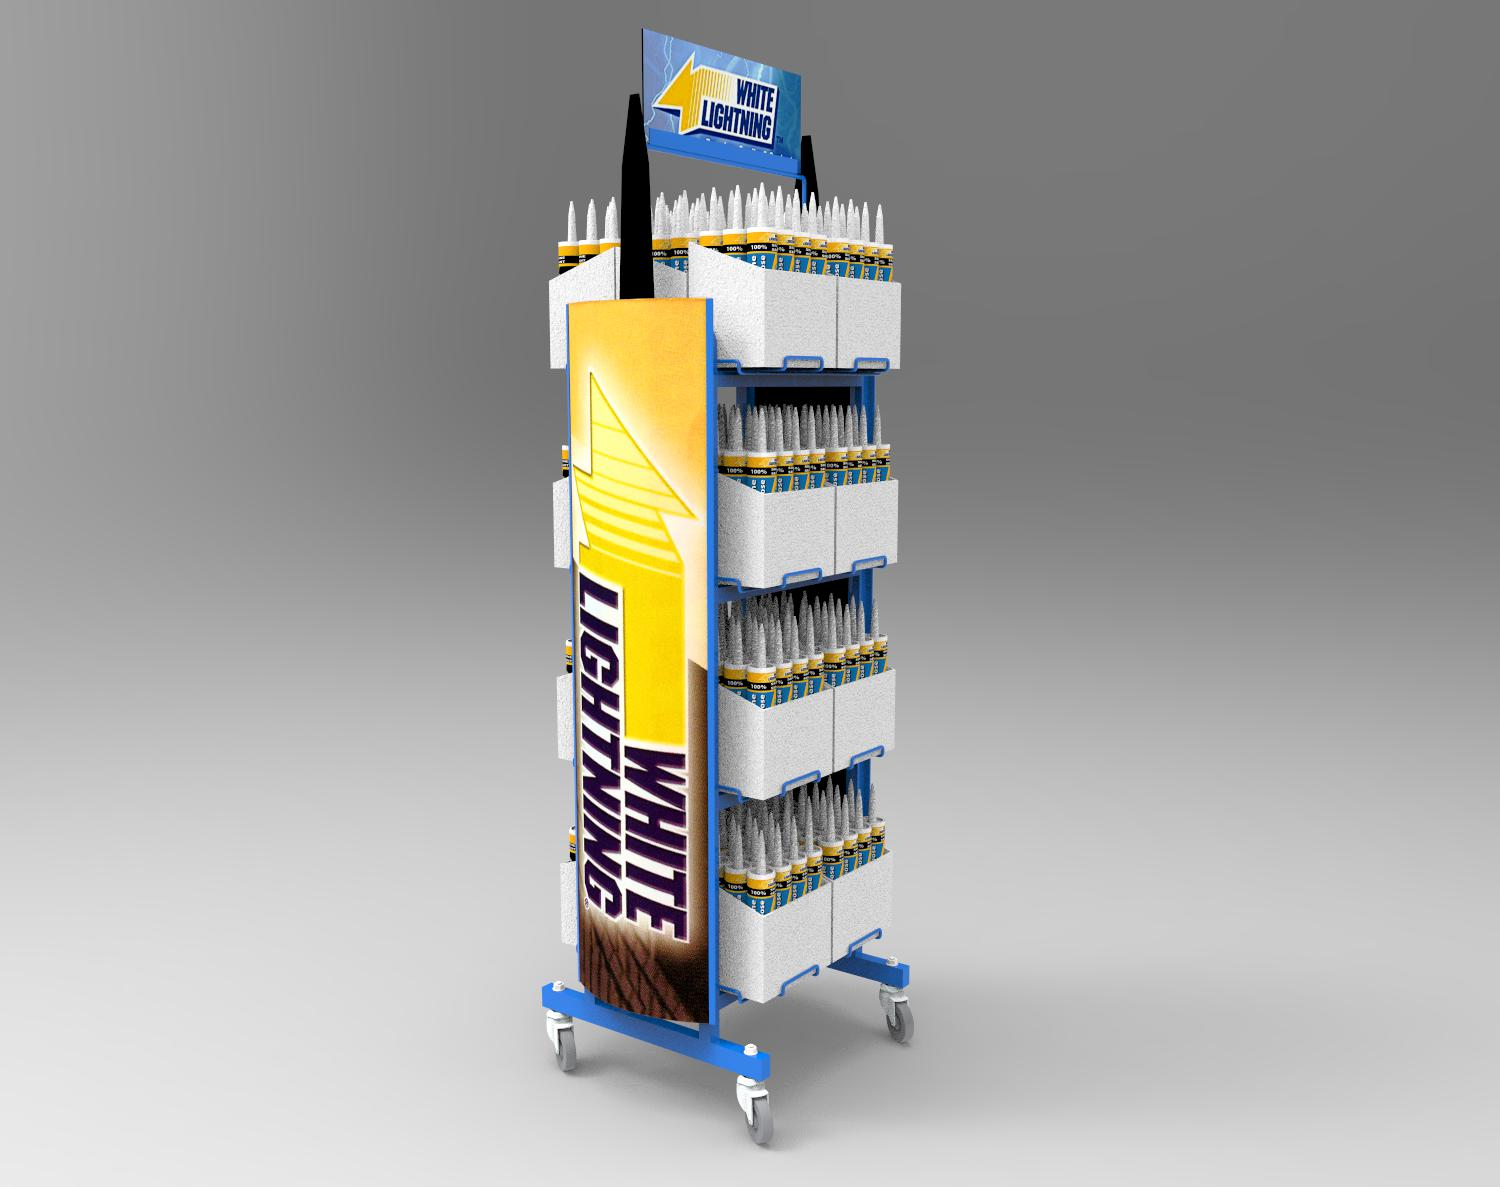 Rolling Rack - Featuring shaped, dimensional side graphics